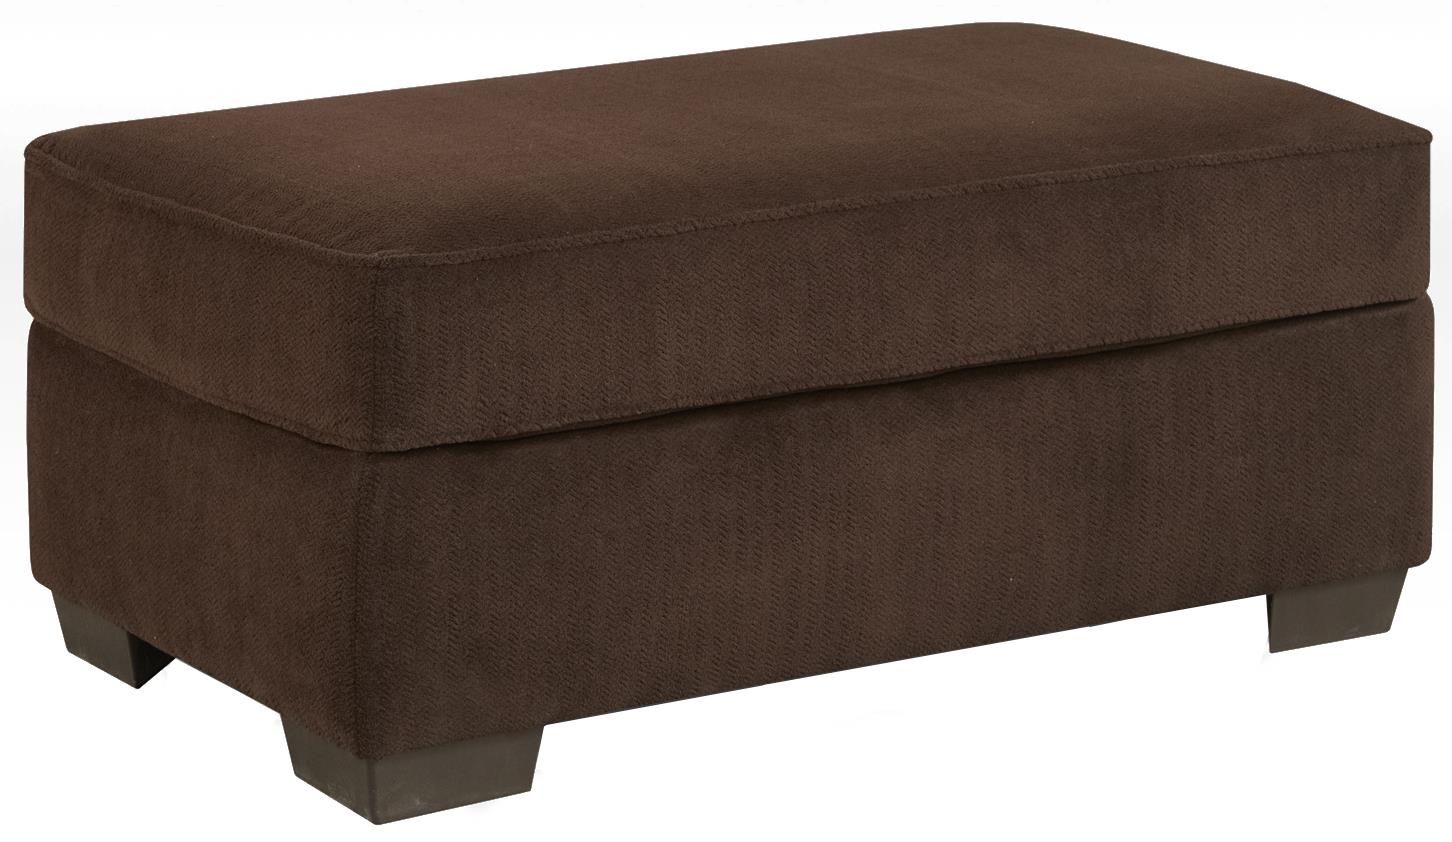 Affordable Furniture 7300 Cocktail Ottoman - Item Number: 7305 Chevron Mink